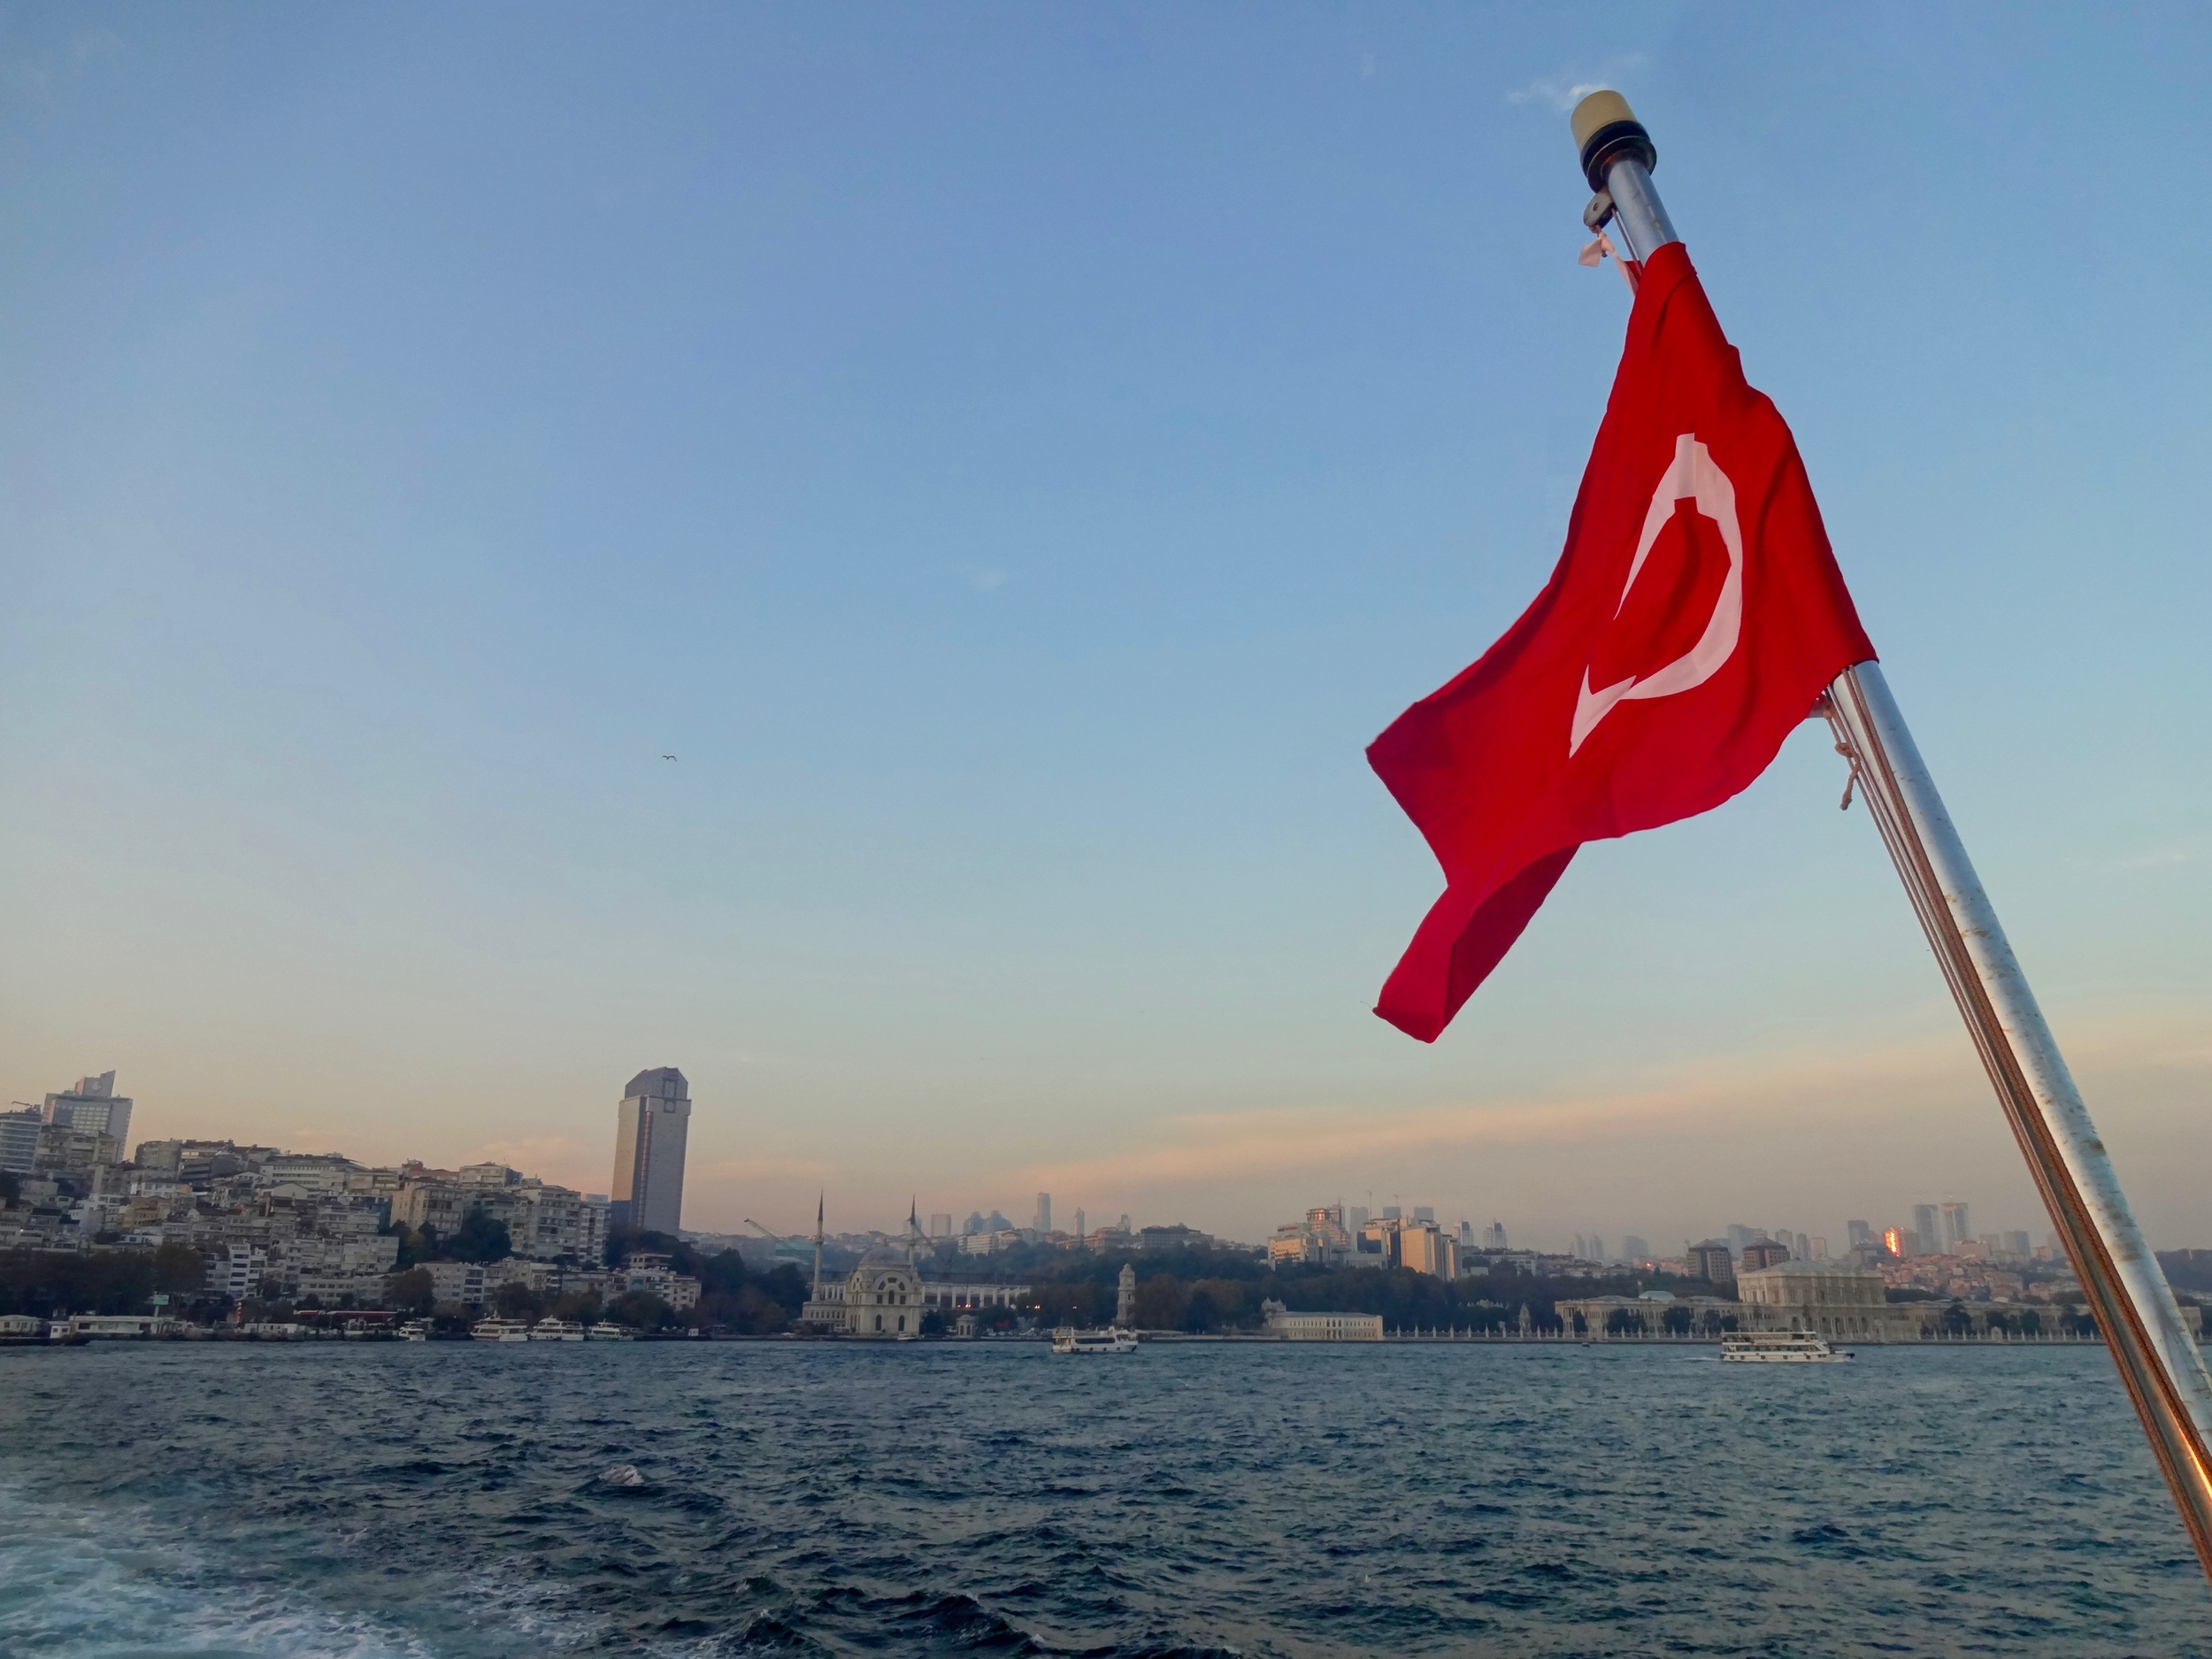 FERRY RIDE IN ISTANBUL, TURKEY - M.QUIGELY